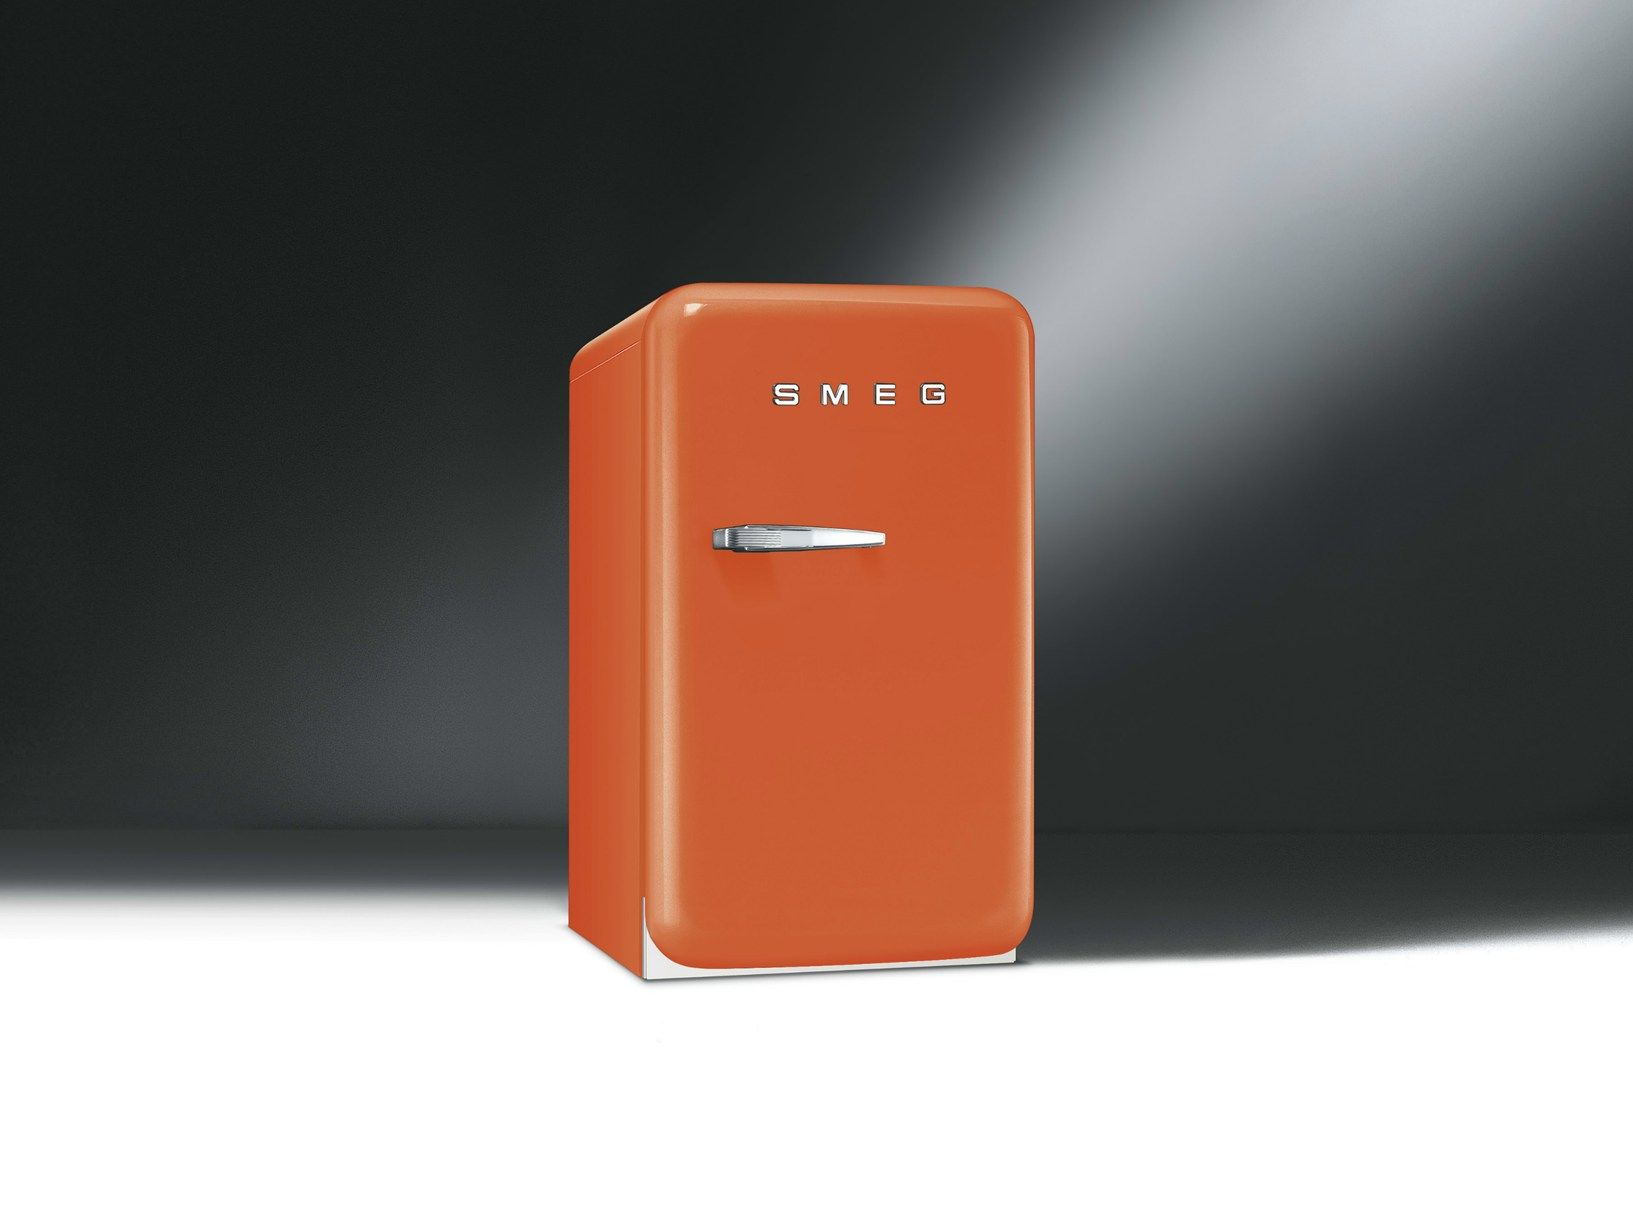 smeg presents new fab5 mini fridge. Black Bedroom Furniture Sets. Home Design Ideas